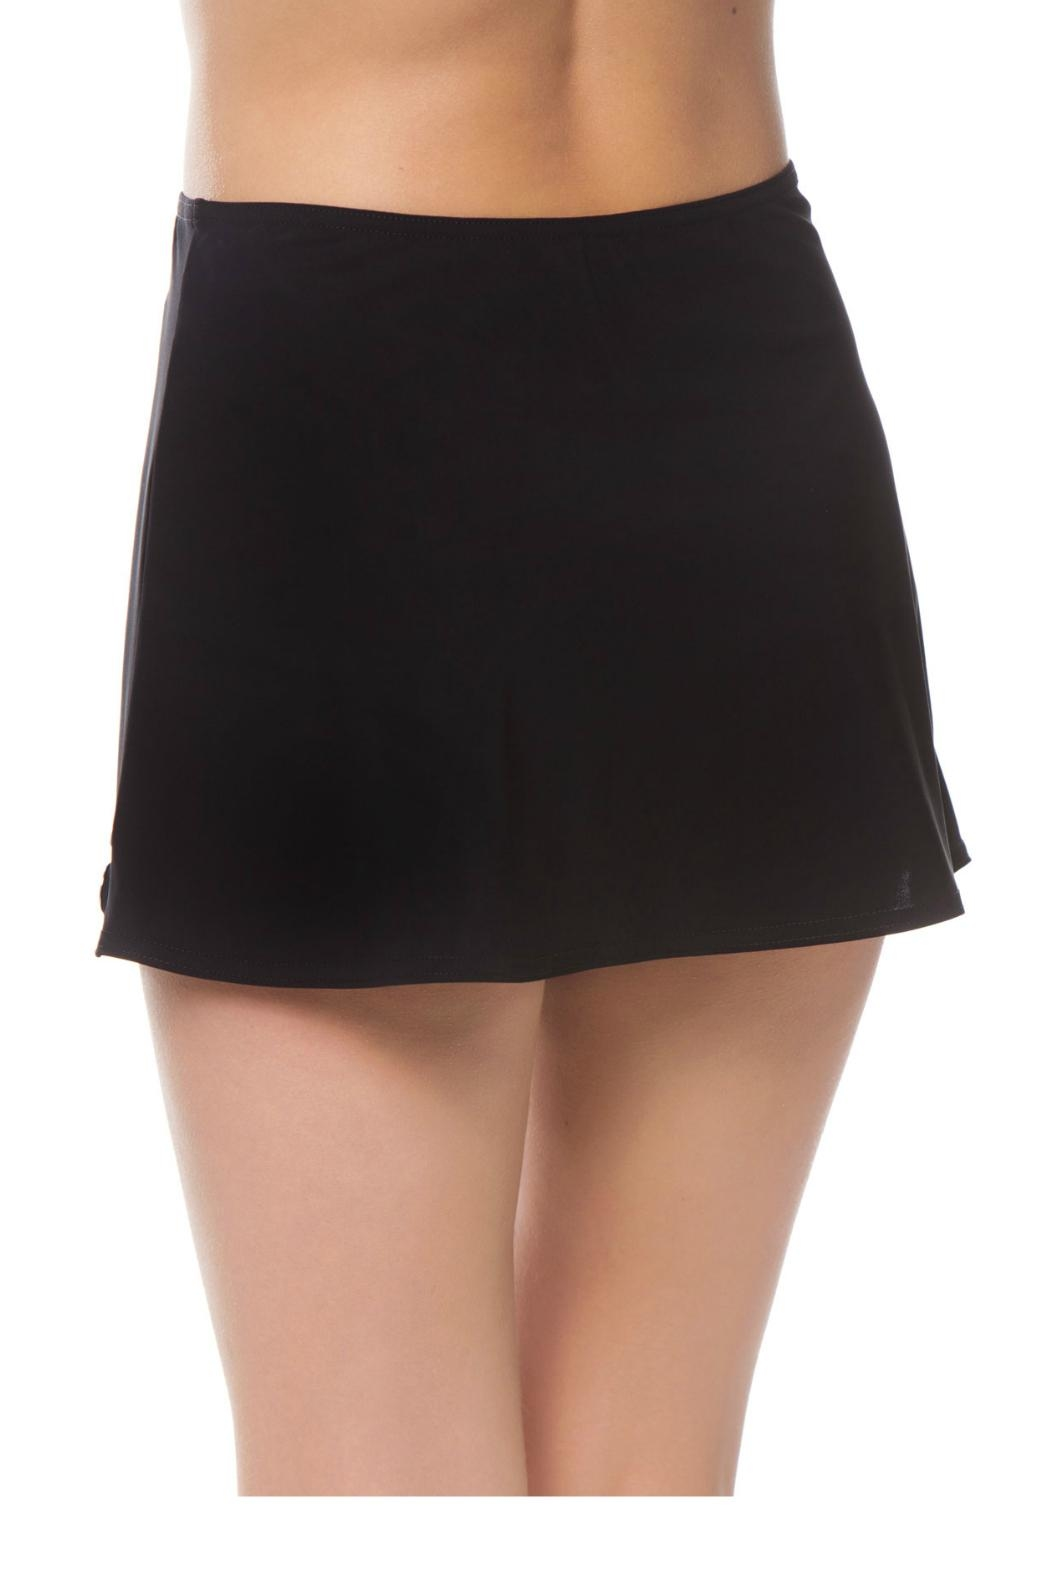 Karla Colletto Viviana a-Line Skirt - Front Full Image